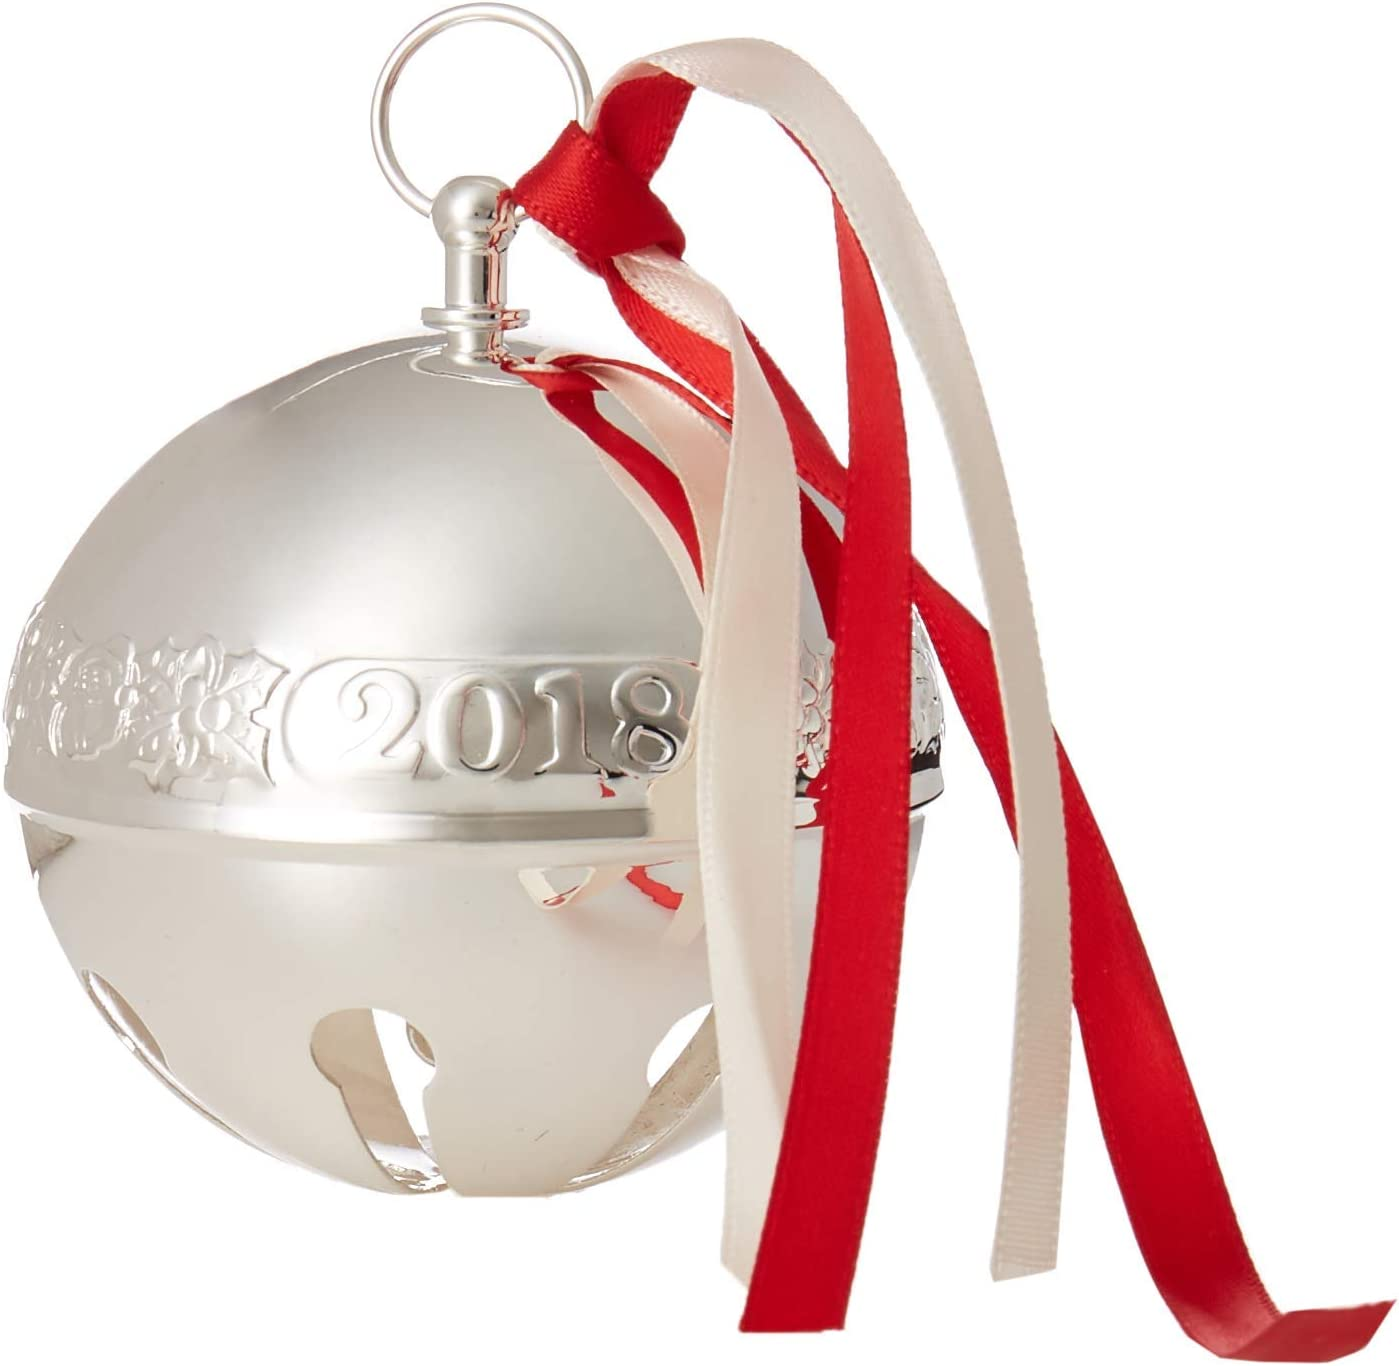 Wallace 2018 Sleigh Bell Silver-Plated Christmas Holiday Ornament, 48th Edition, [並行輸入品]